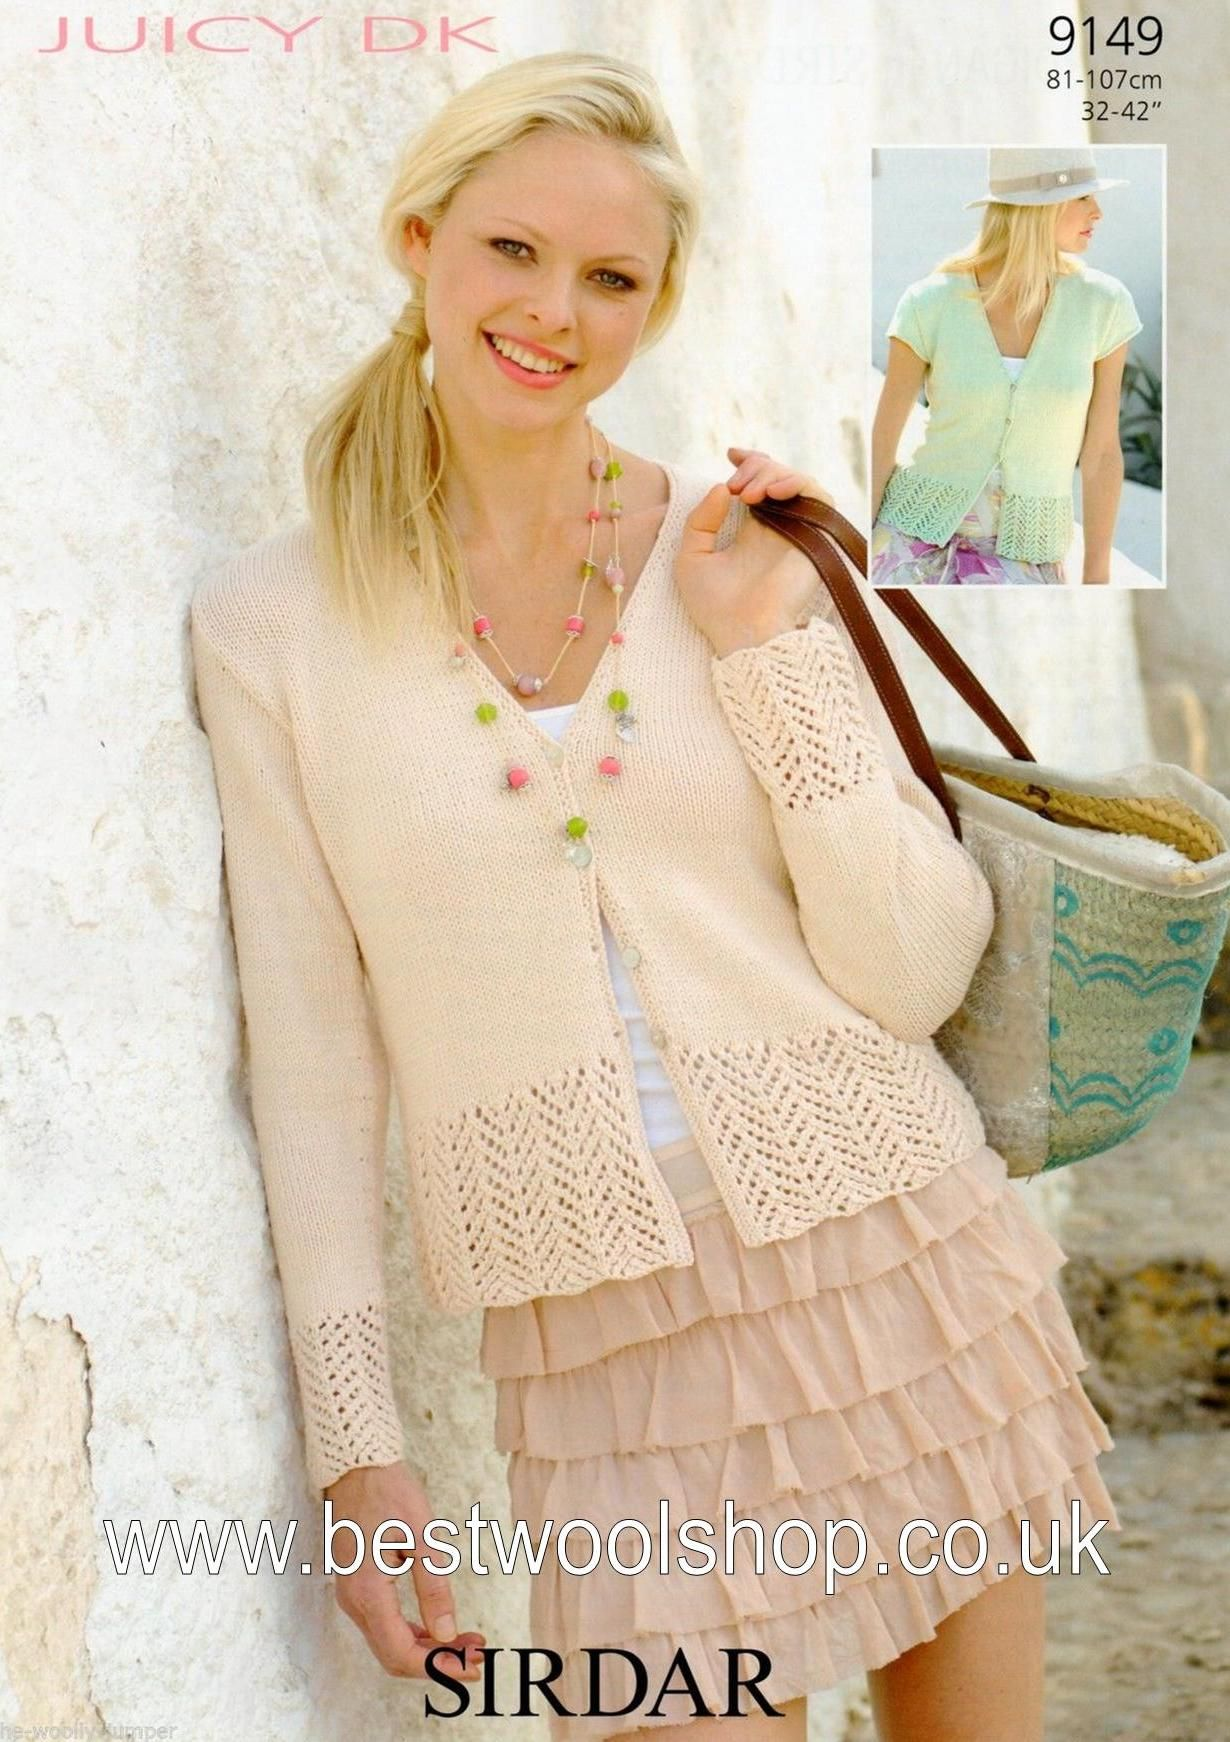 Sirdar Knitting Patterns 9149 - sirdar juicy dk lacy edged cardigan knitting pattern - to fit ygodyum